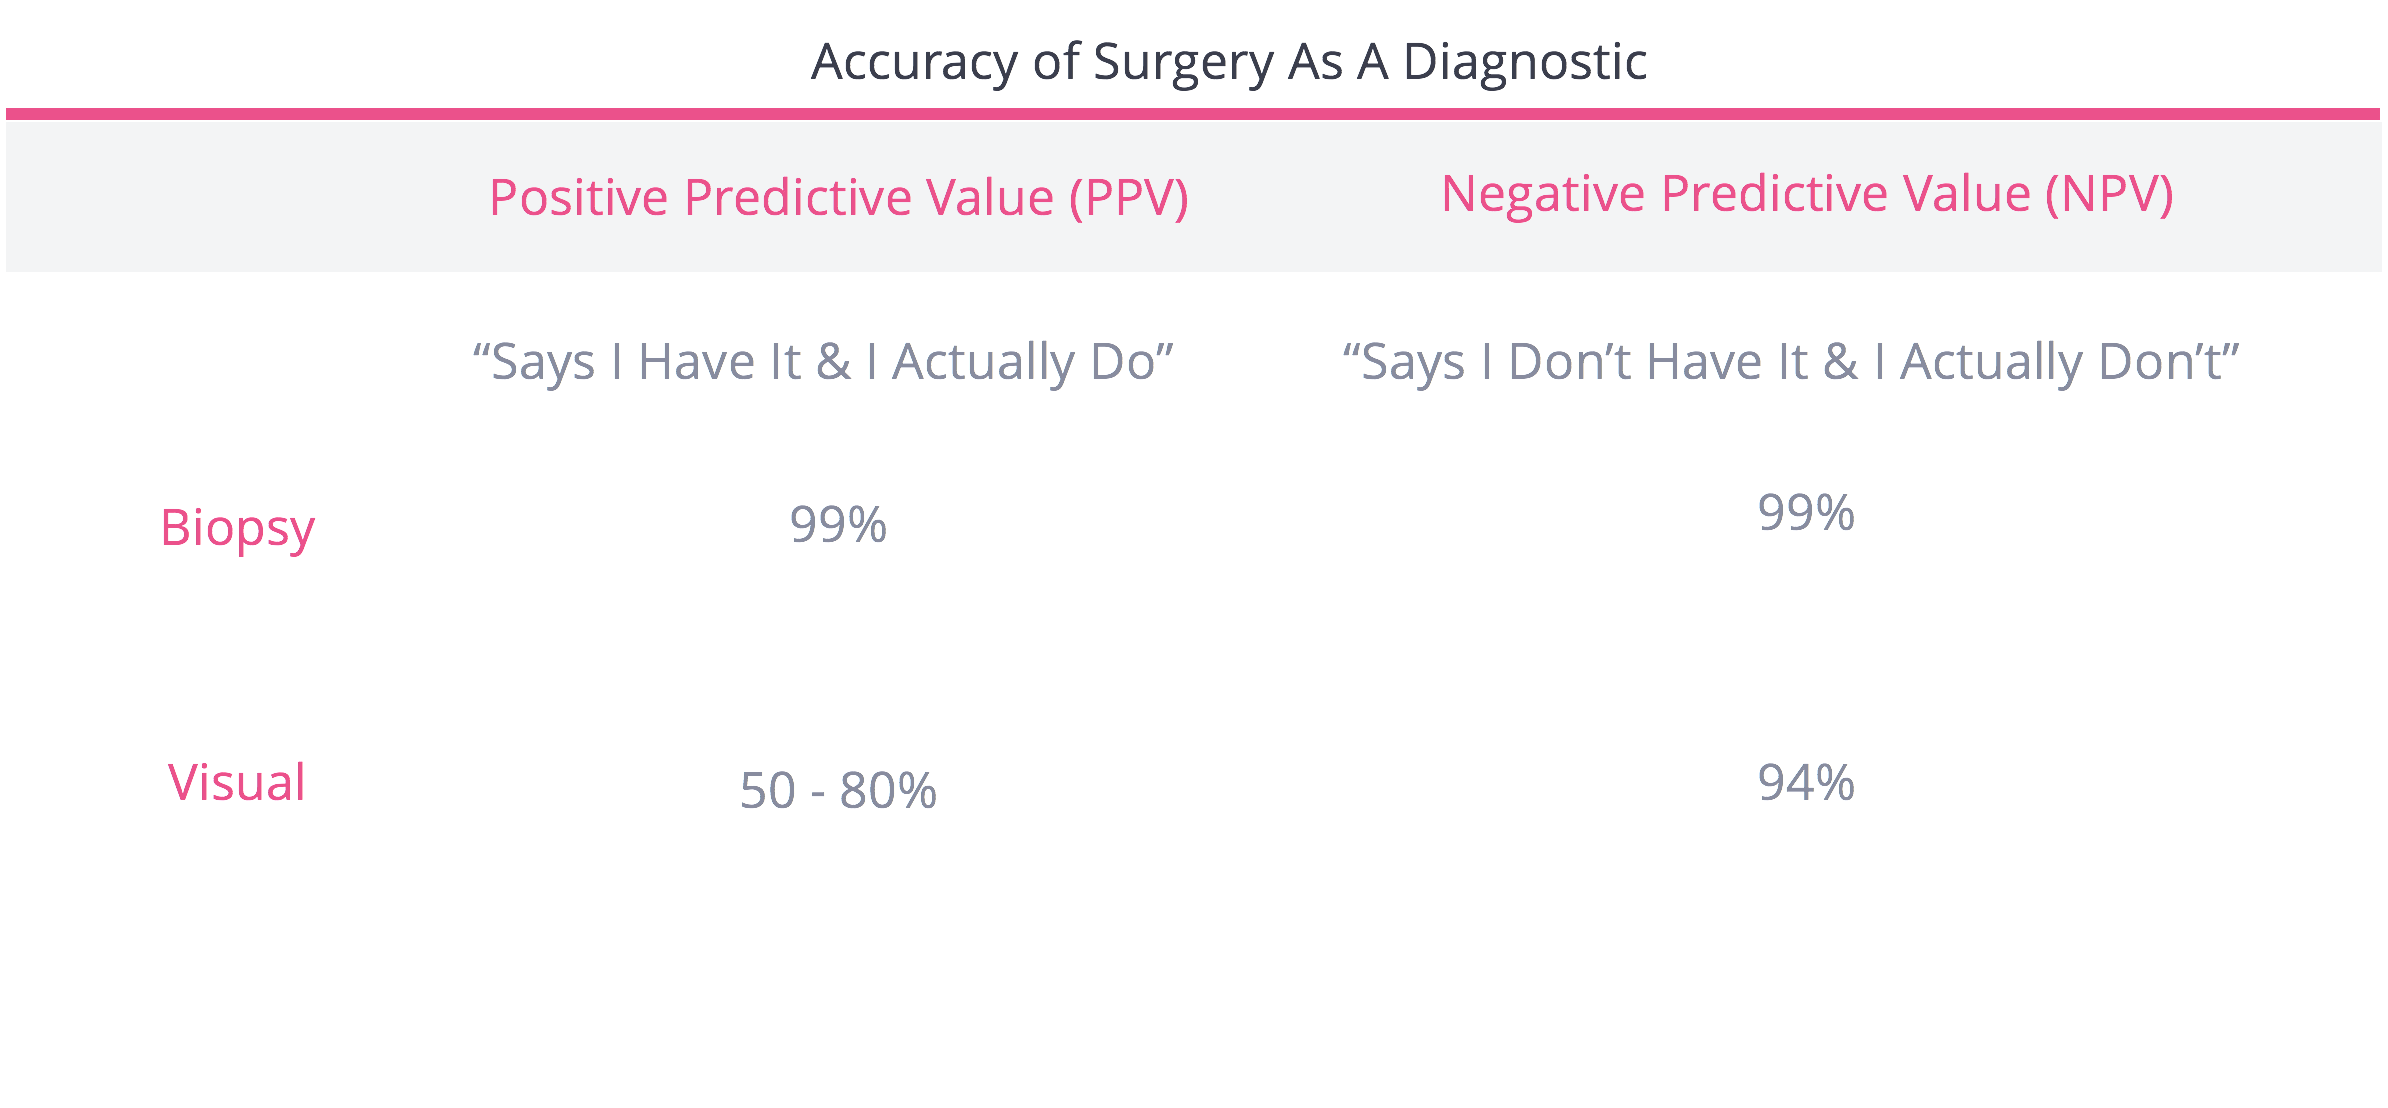 Accuracy of diagnostic surgery for endometriosis